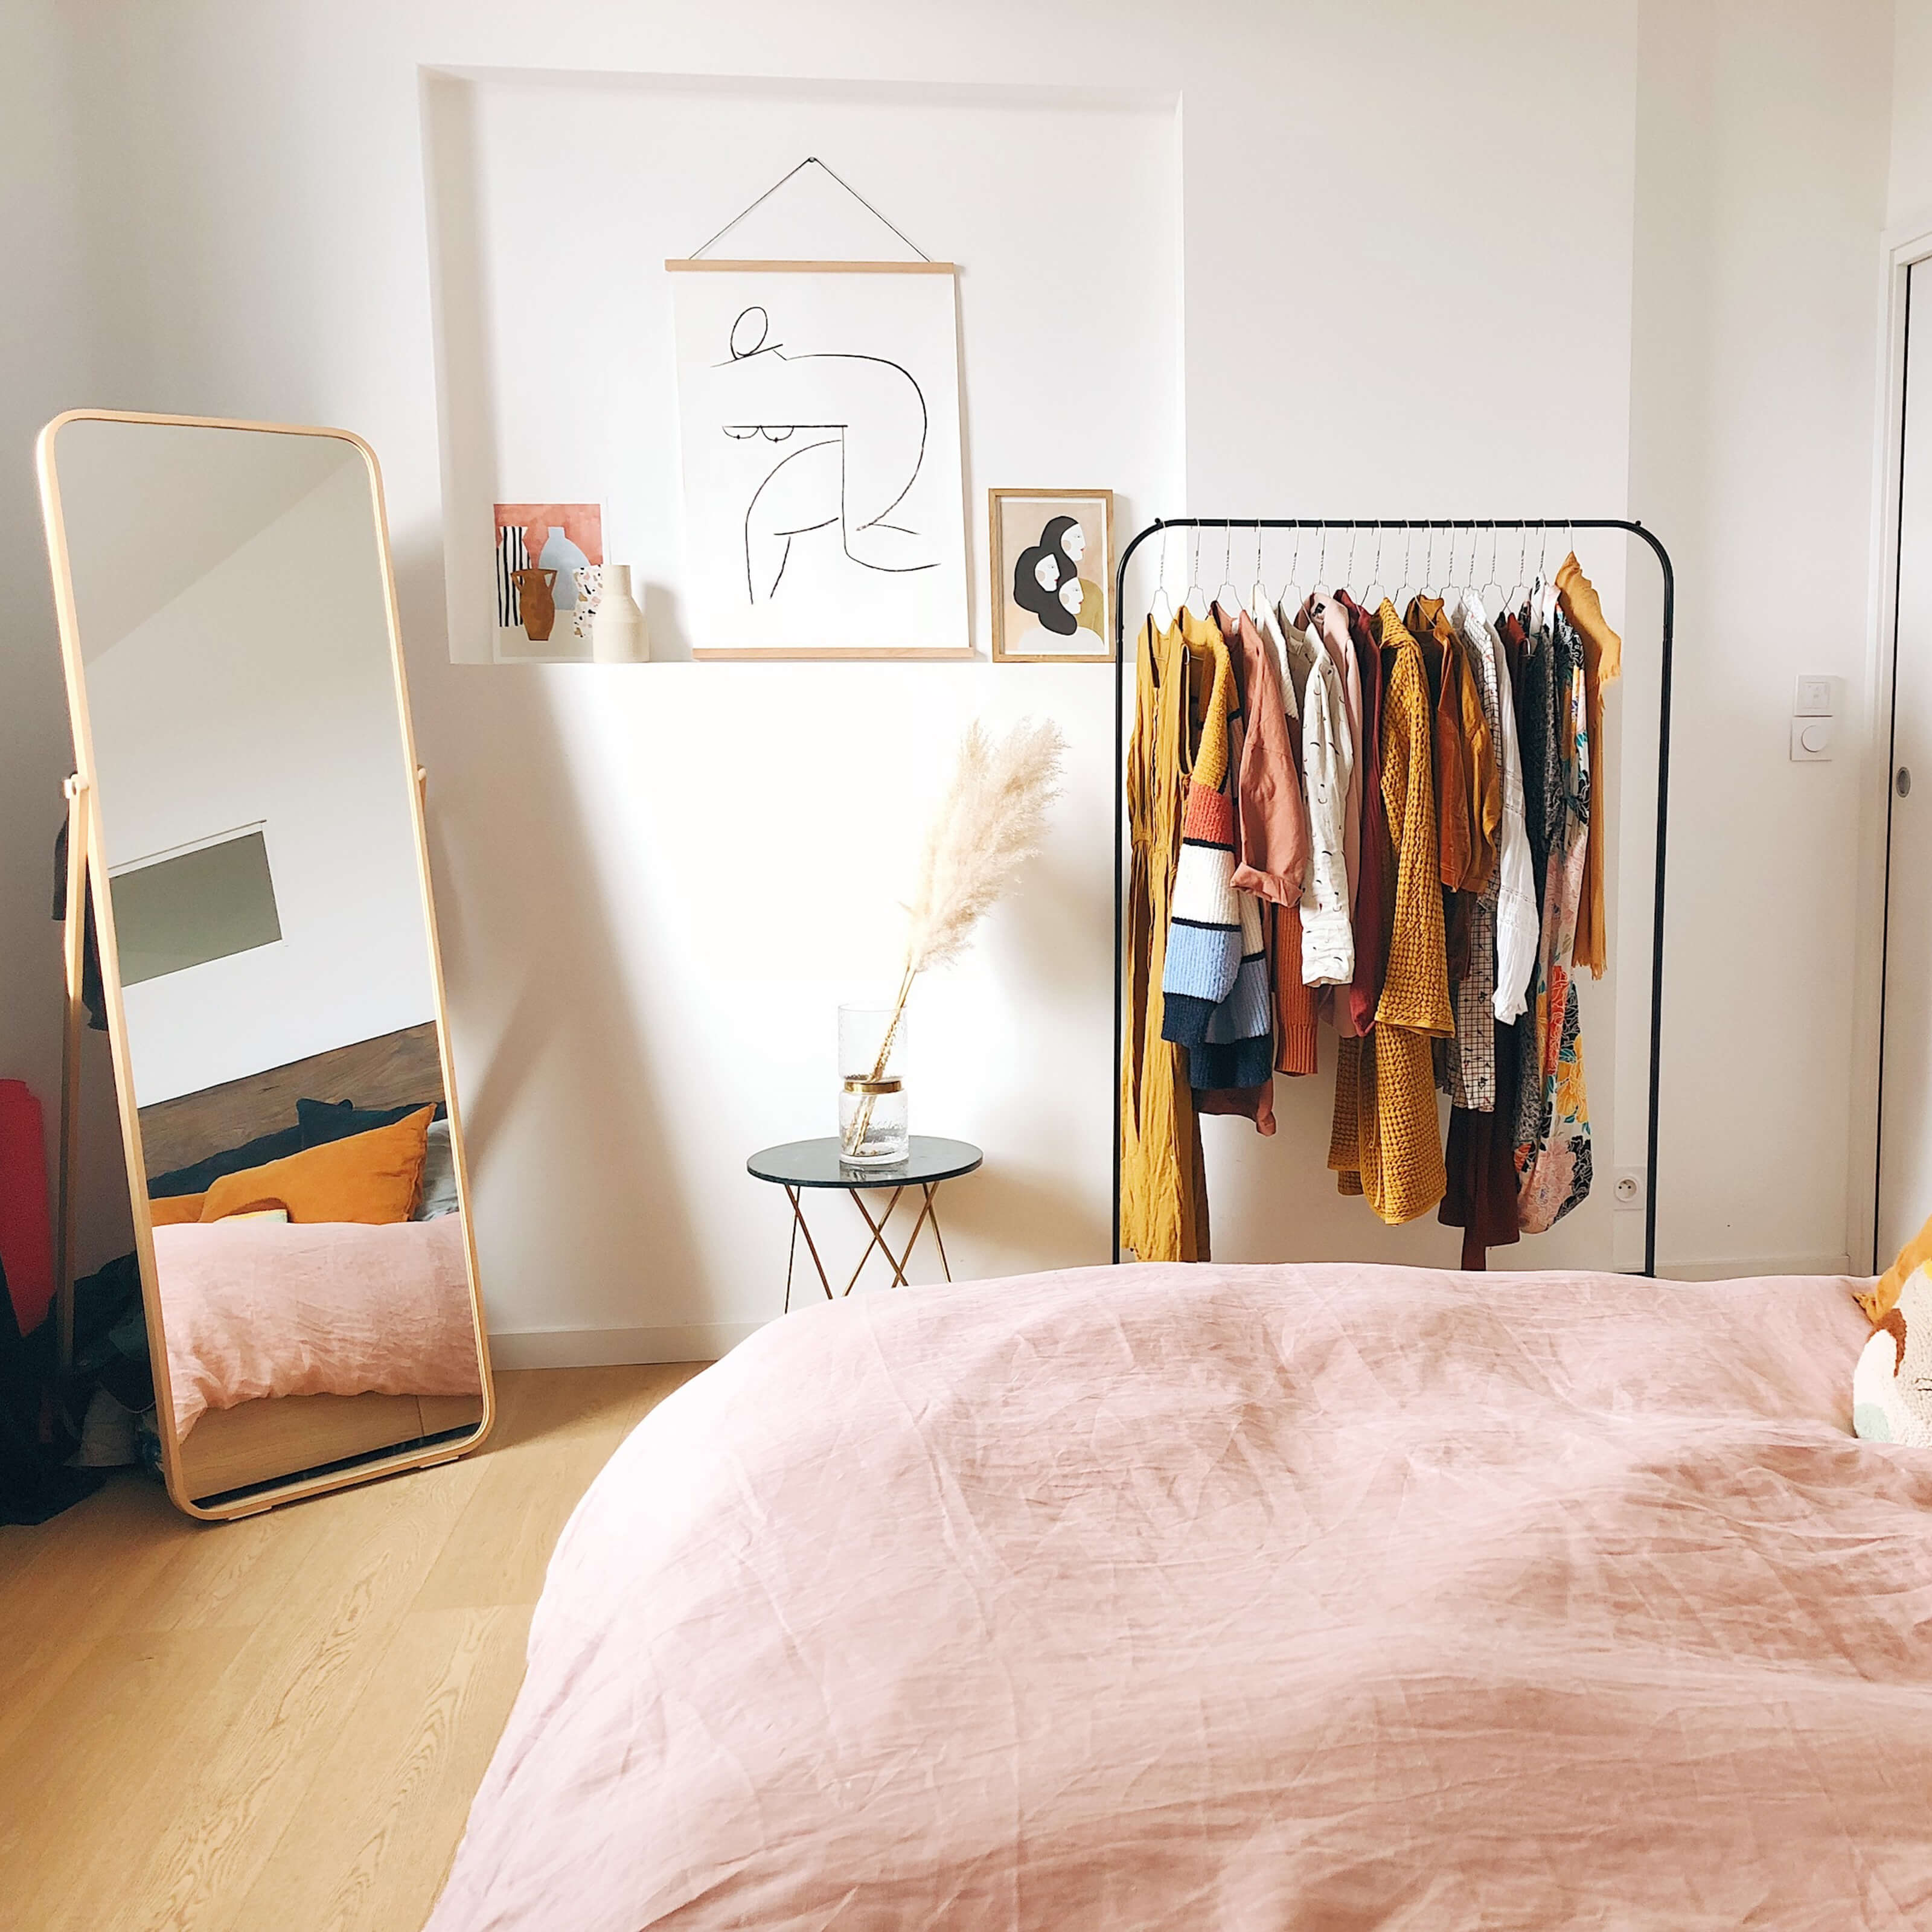 bed, mirror, coat rack, paintings